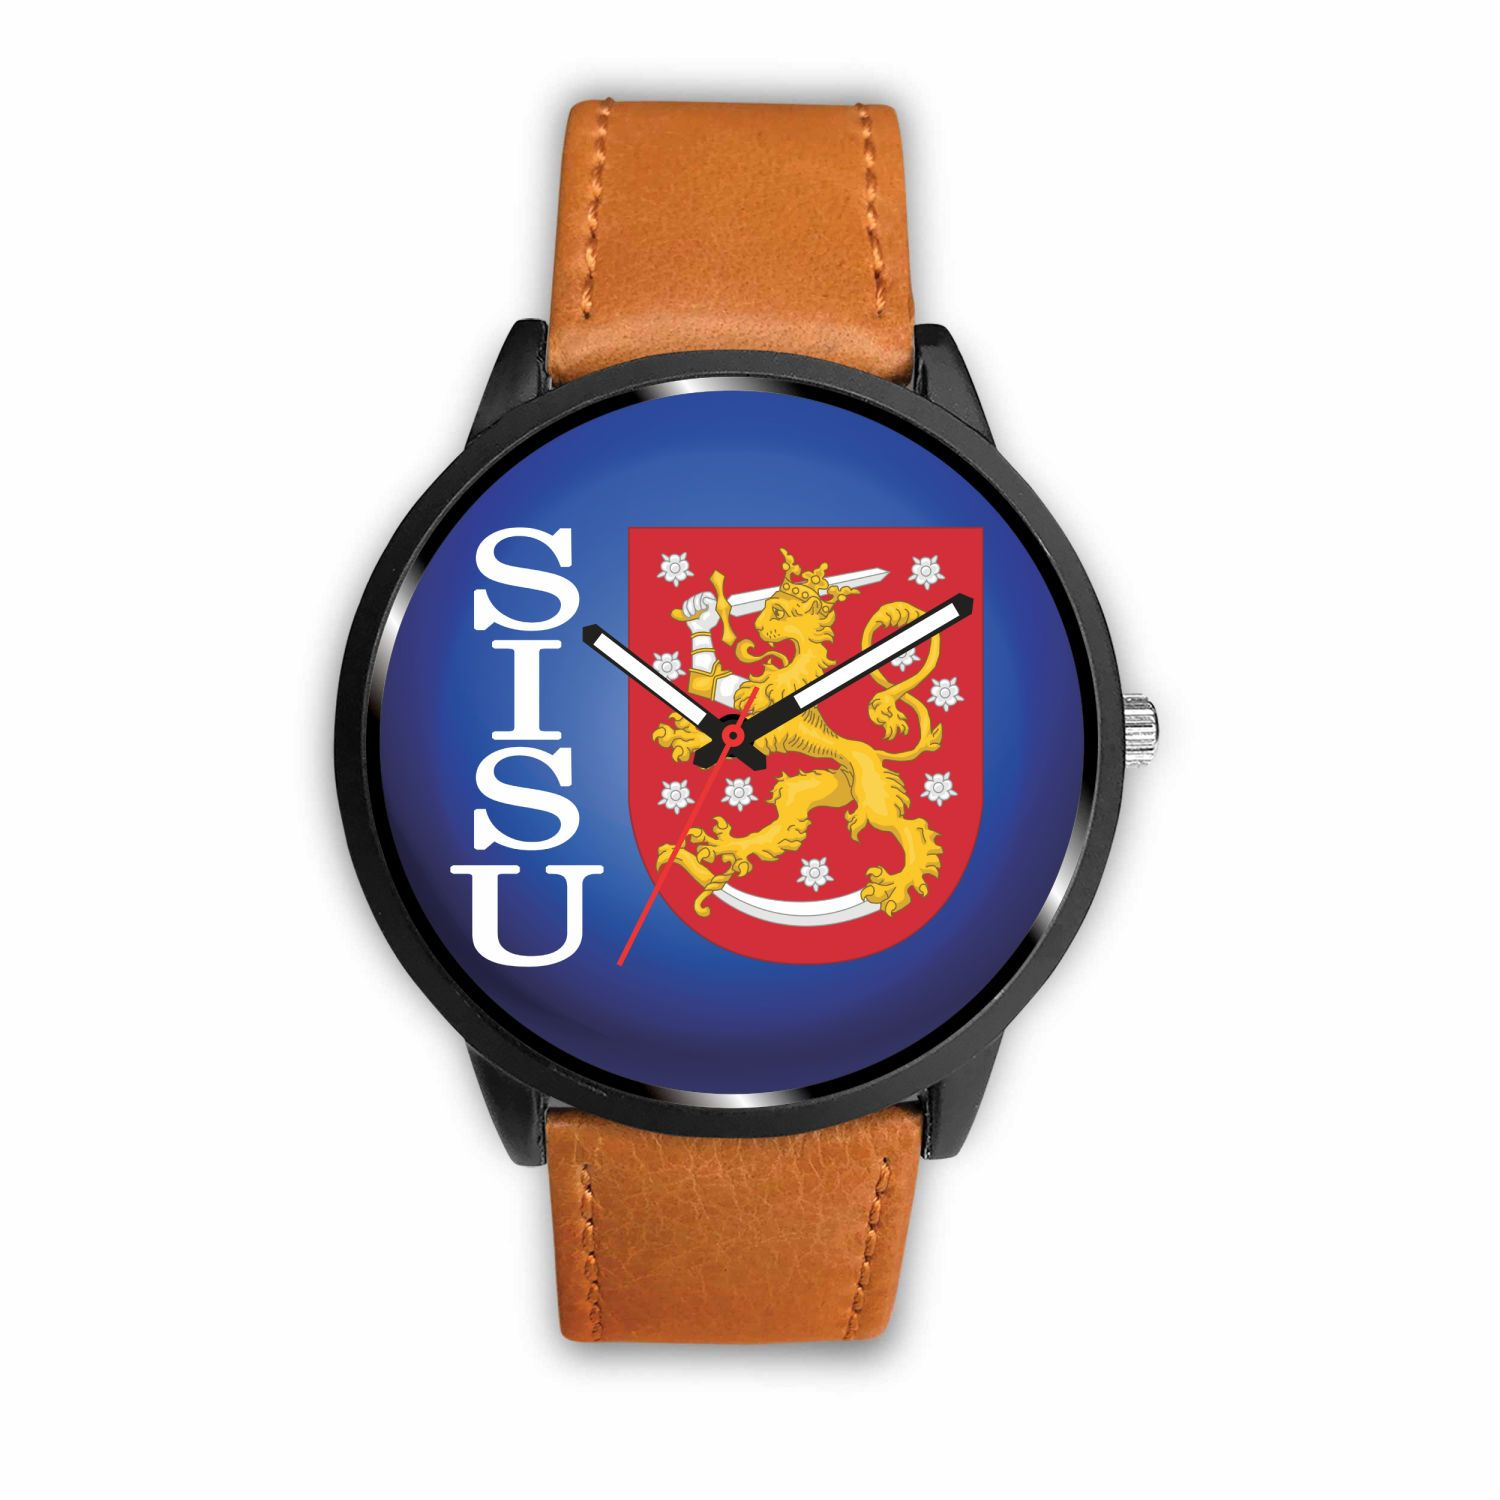 Awesome SISU Finnish Watch - Free US Shipping